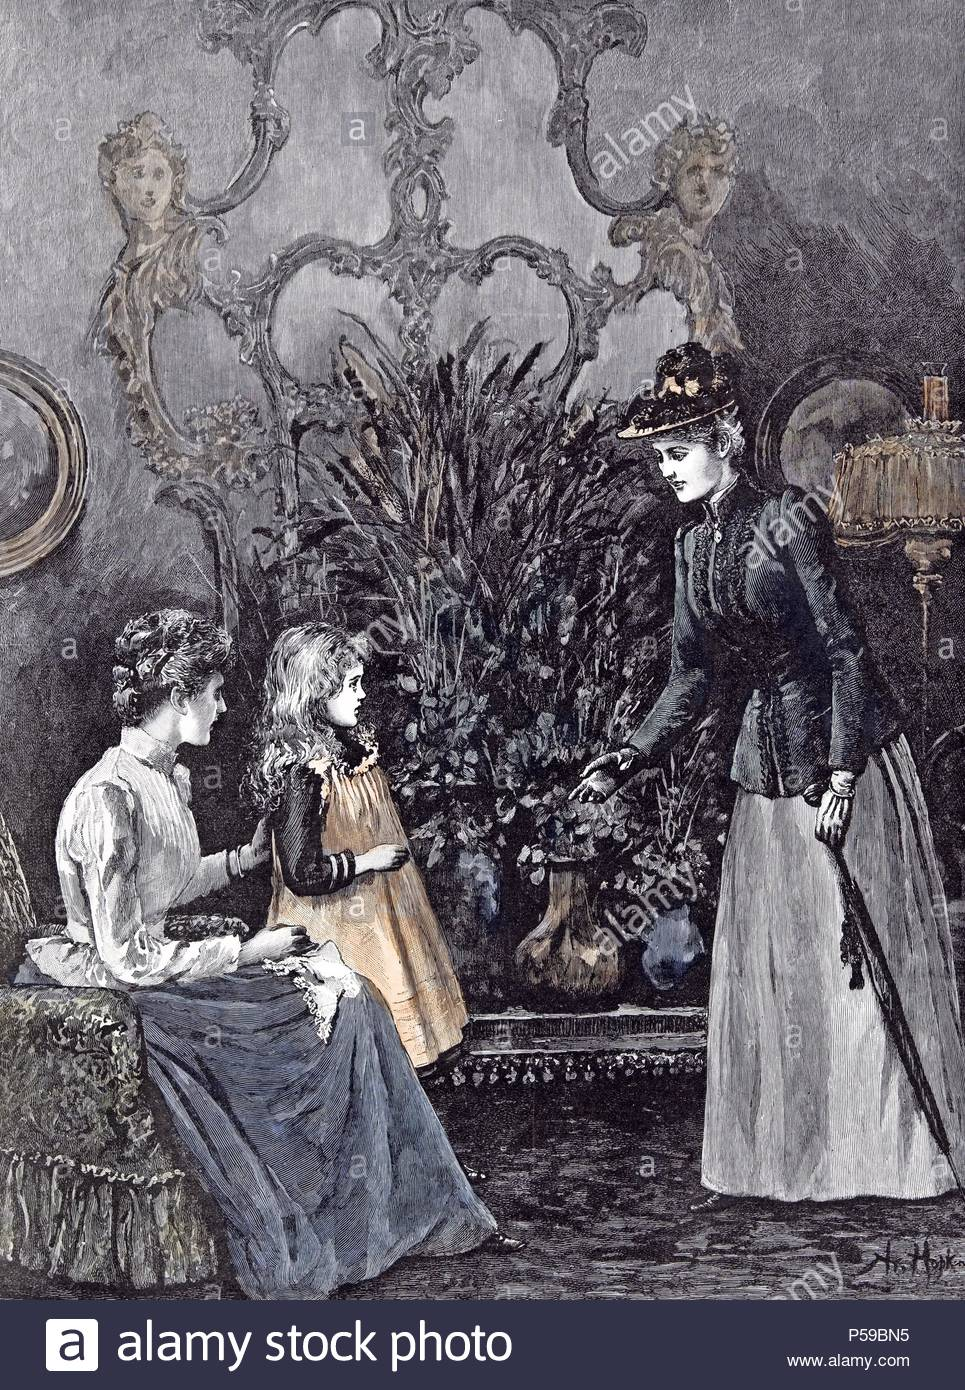 The New Governess; A. Hopkins; Child; 1892;, shy; anticipation; umbrella; skirt; black gloves; baroque interior; baroque decoration; pots; flowers; plants; mirror; sofa; handkerchief; hat; ovall silhouette; collar; under-sleeves; expectations; lad; gas lamp;. - Stock Image